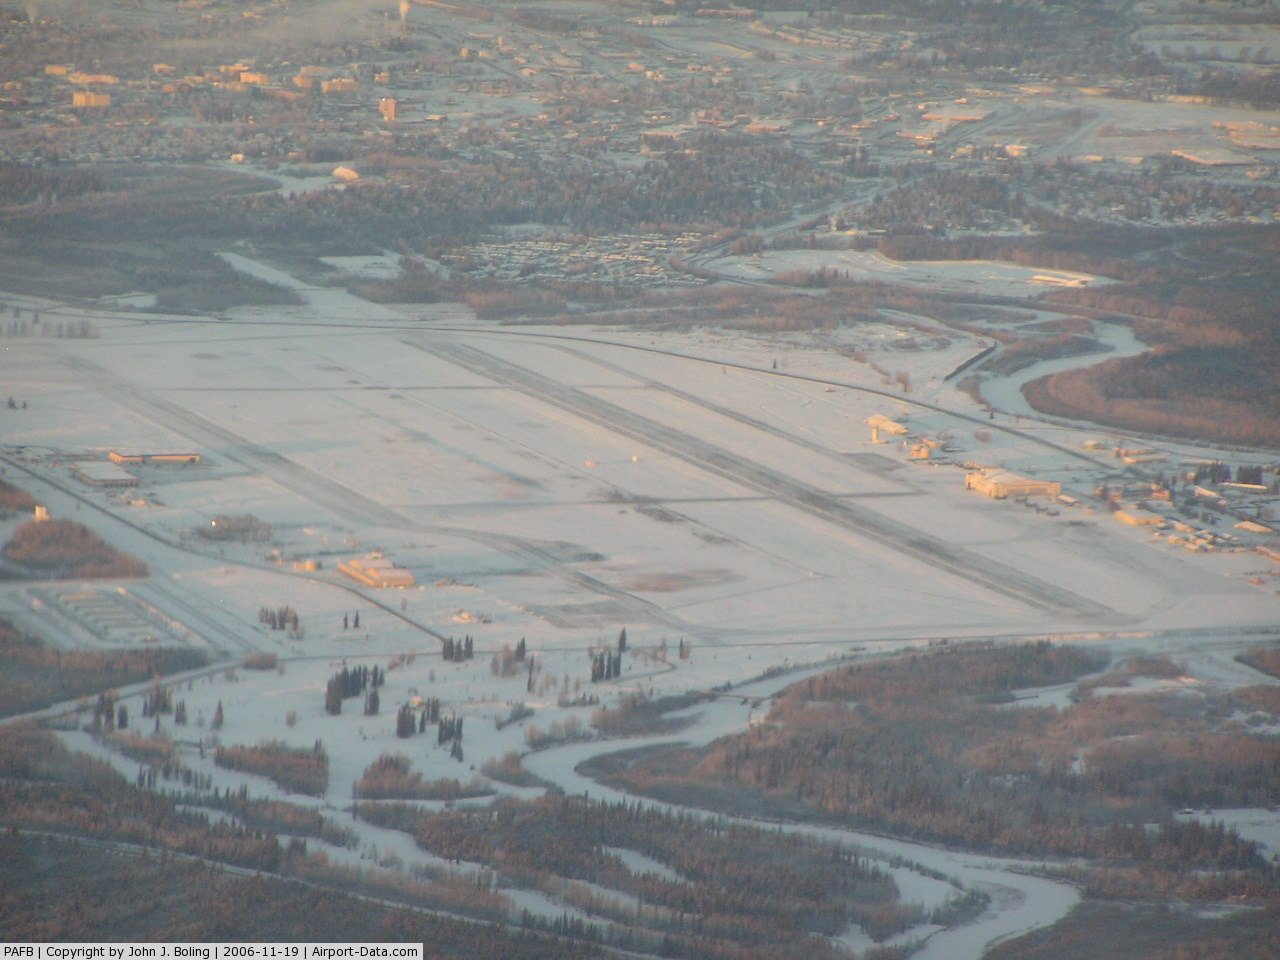 The Ladd Army Airfield